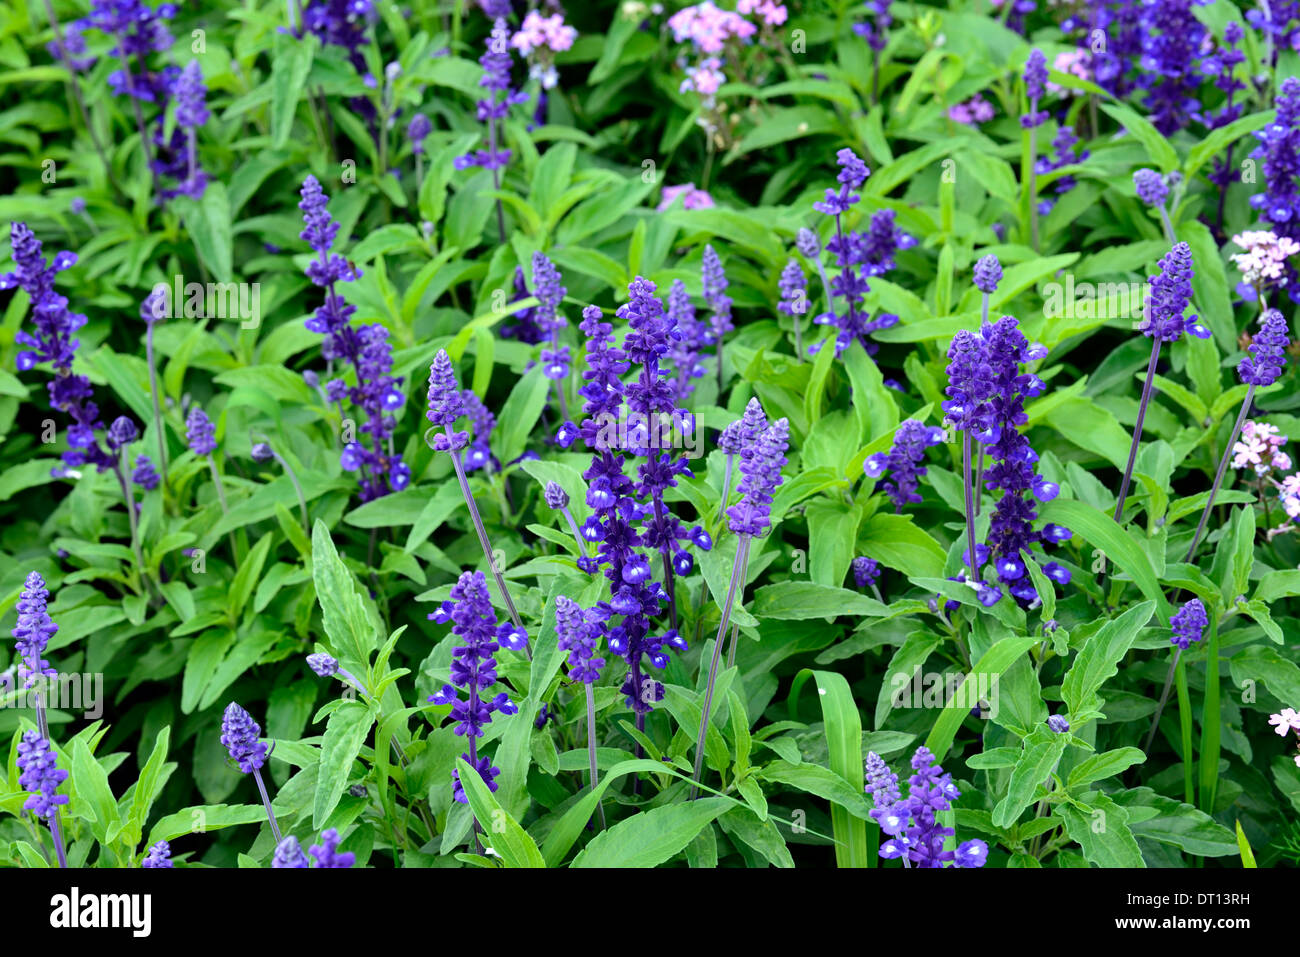 Salvia farinacea victoria purple flowers bloom blossom officinale salvia farinacea victoria purple flowers bloom blossom officinale plant sage sages flower flowering perennial herbaceous plant mightylinksfo